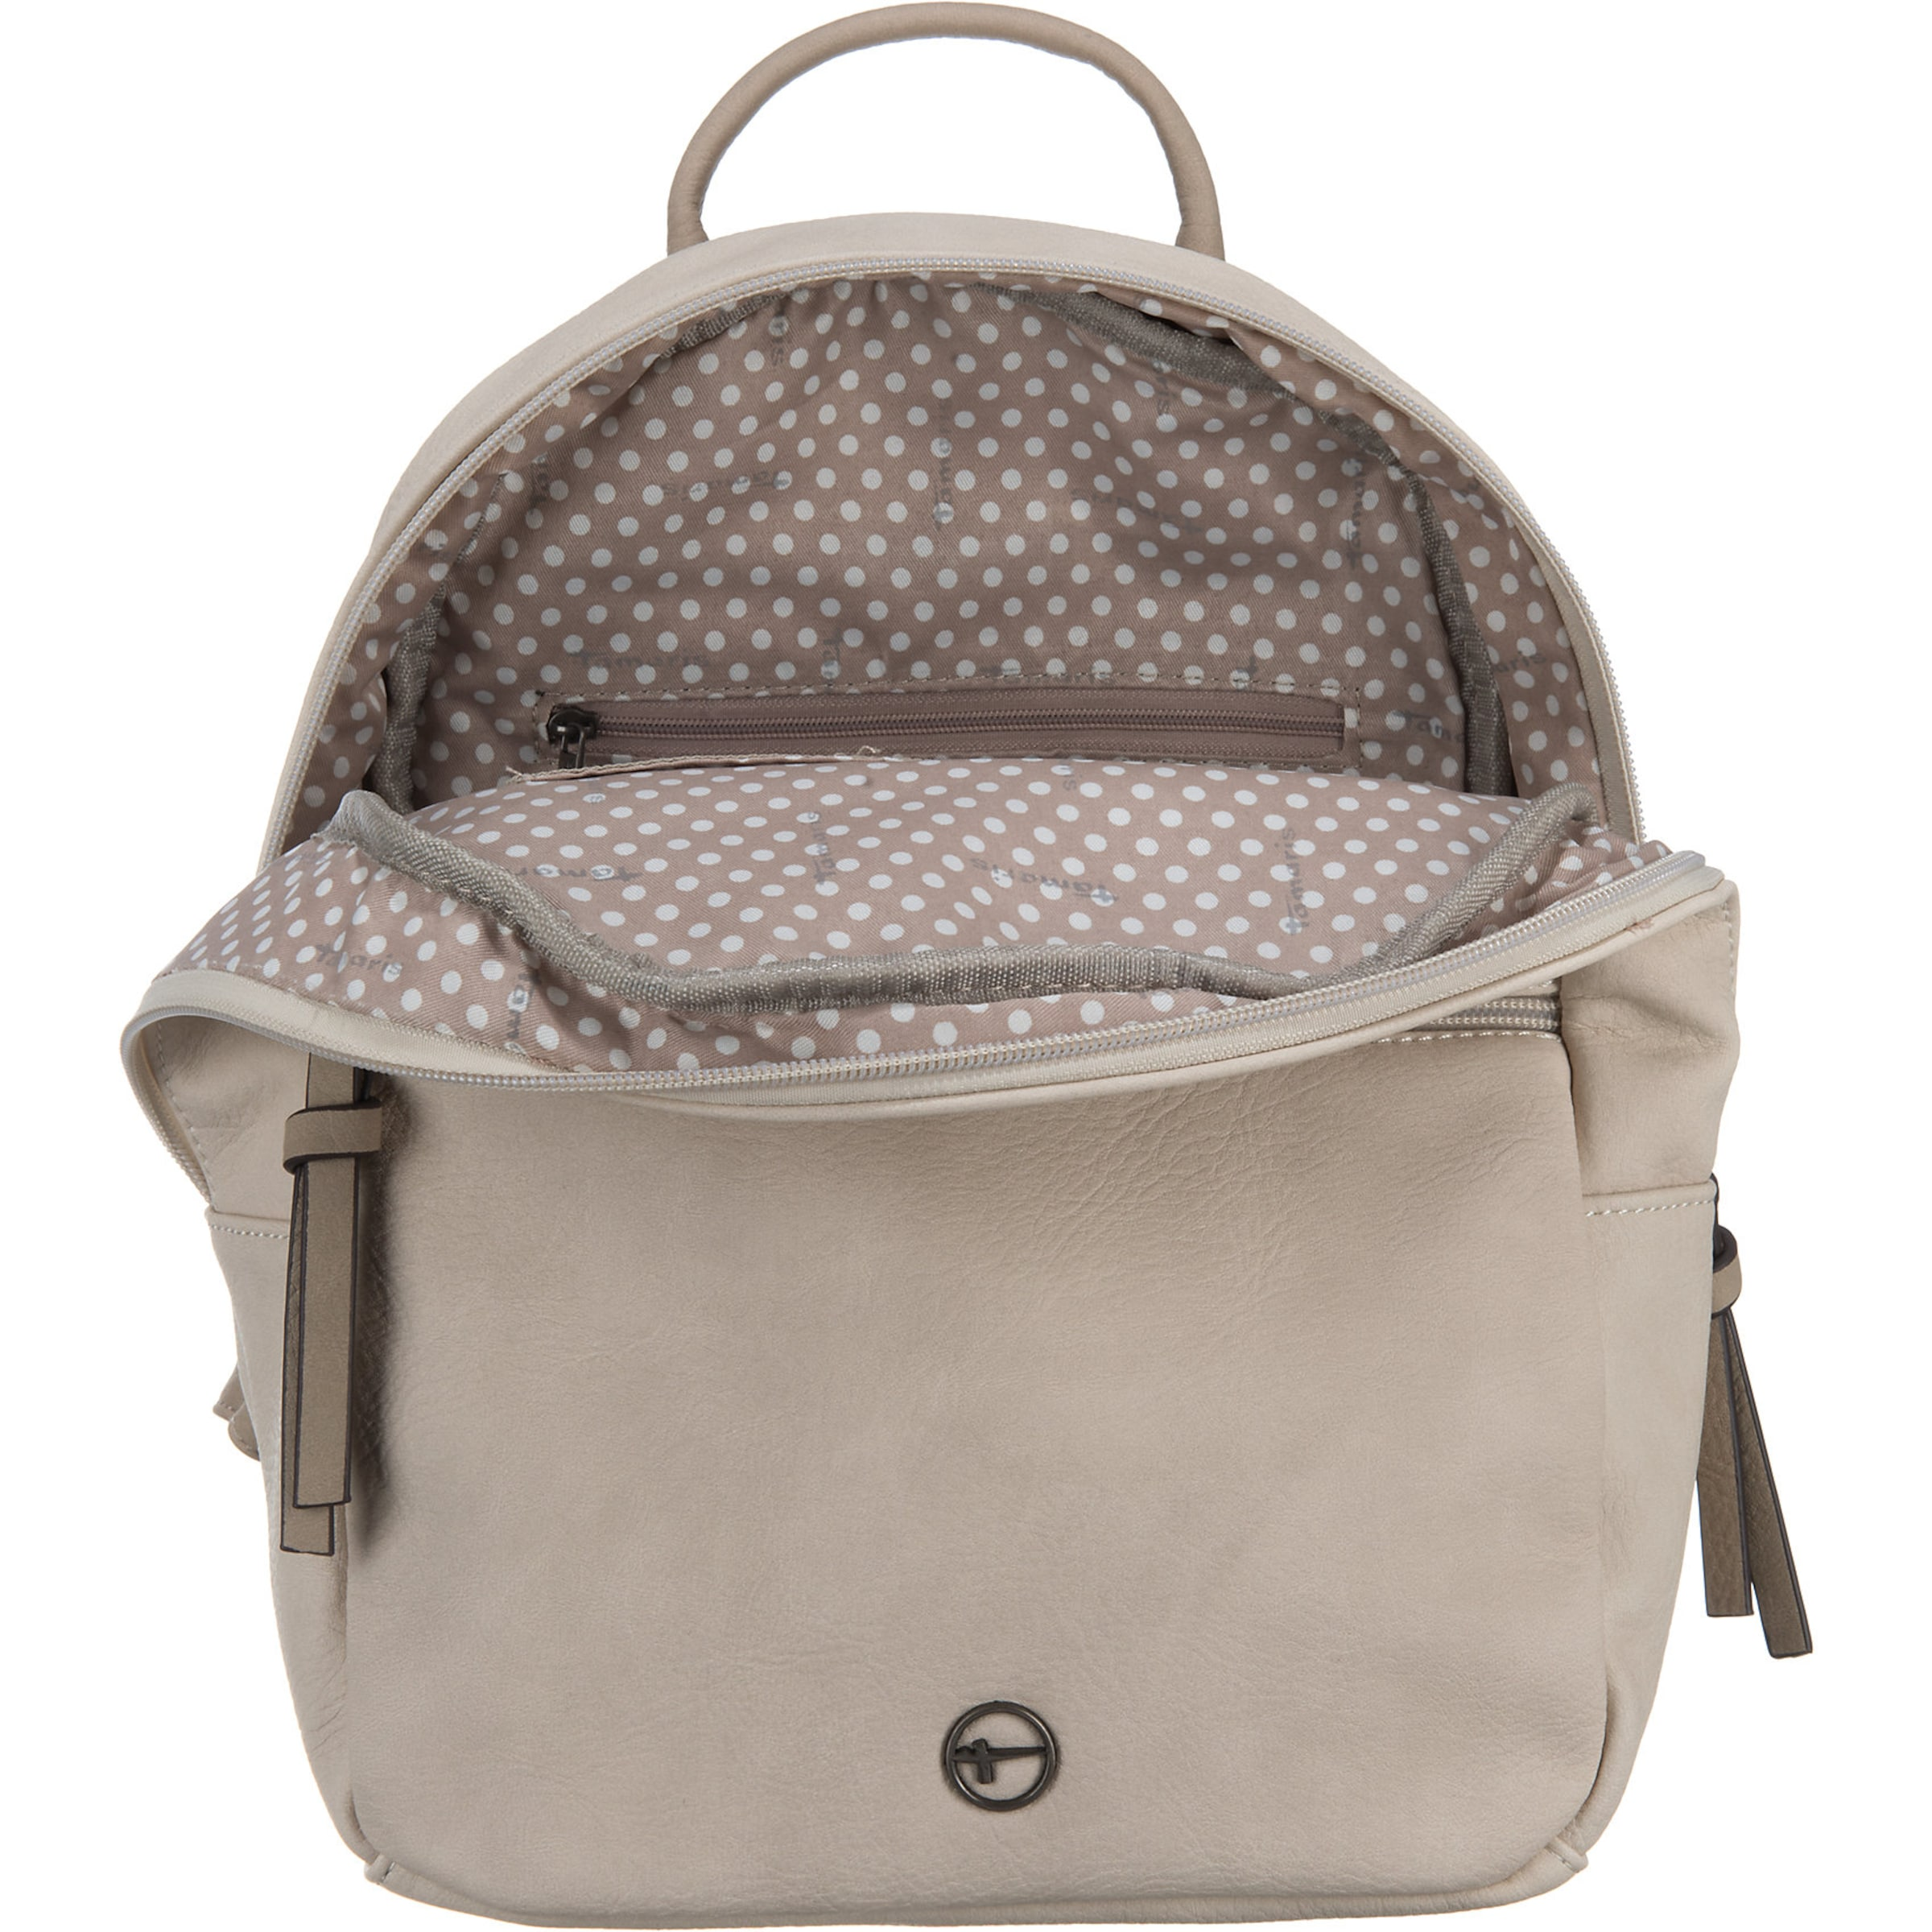 Tamaris In Backpack 'aurora' 'aurora' In Creme Tamaris Tamaris Backpack Backpack Creme WxdCBeroQ